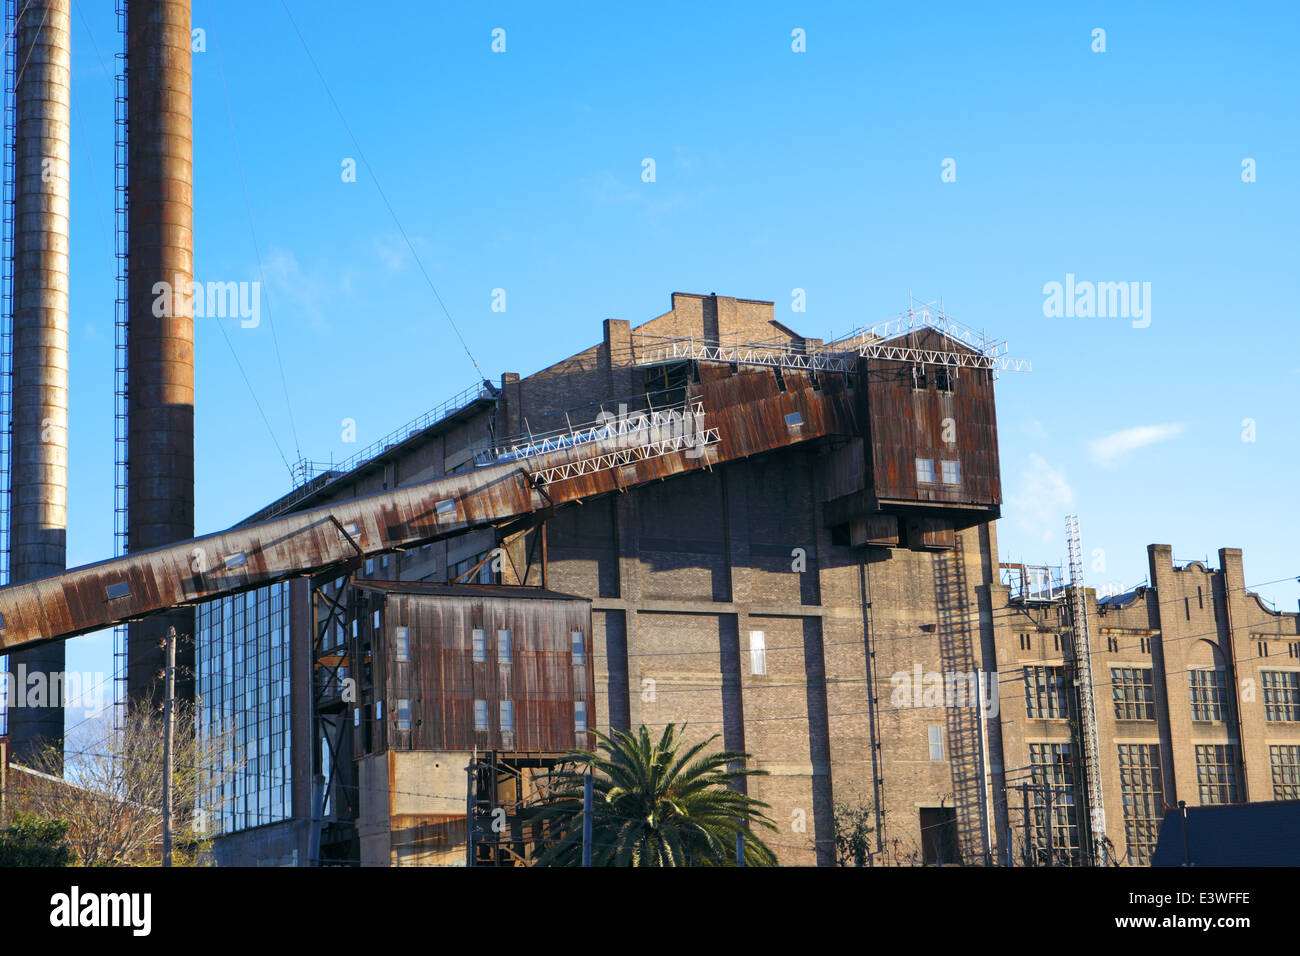 white bay power station which is now heritage listed and no longer used to generate power for the Sydney rail network, - Stock Image